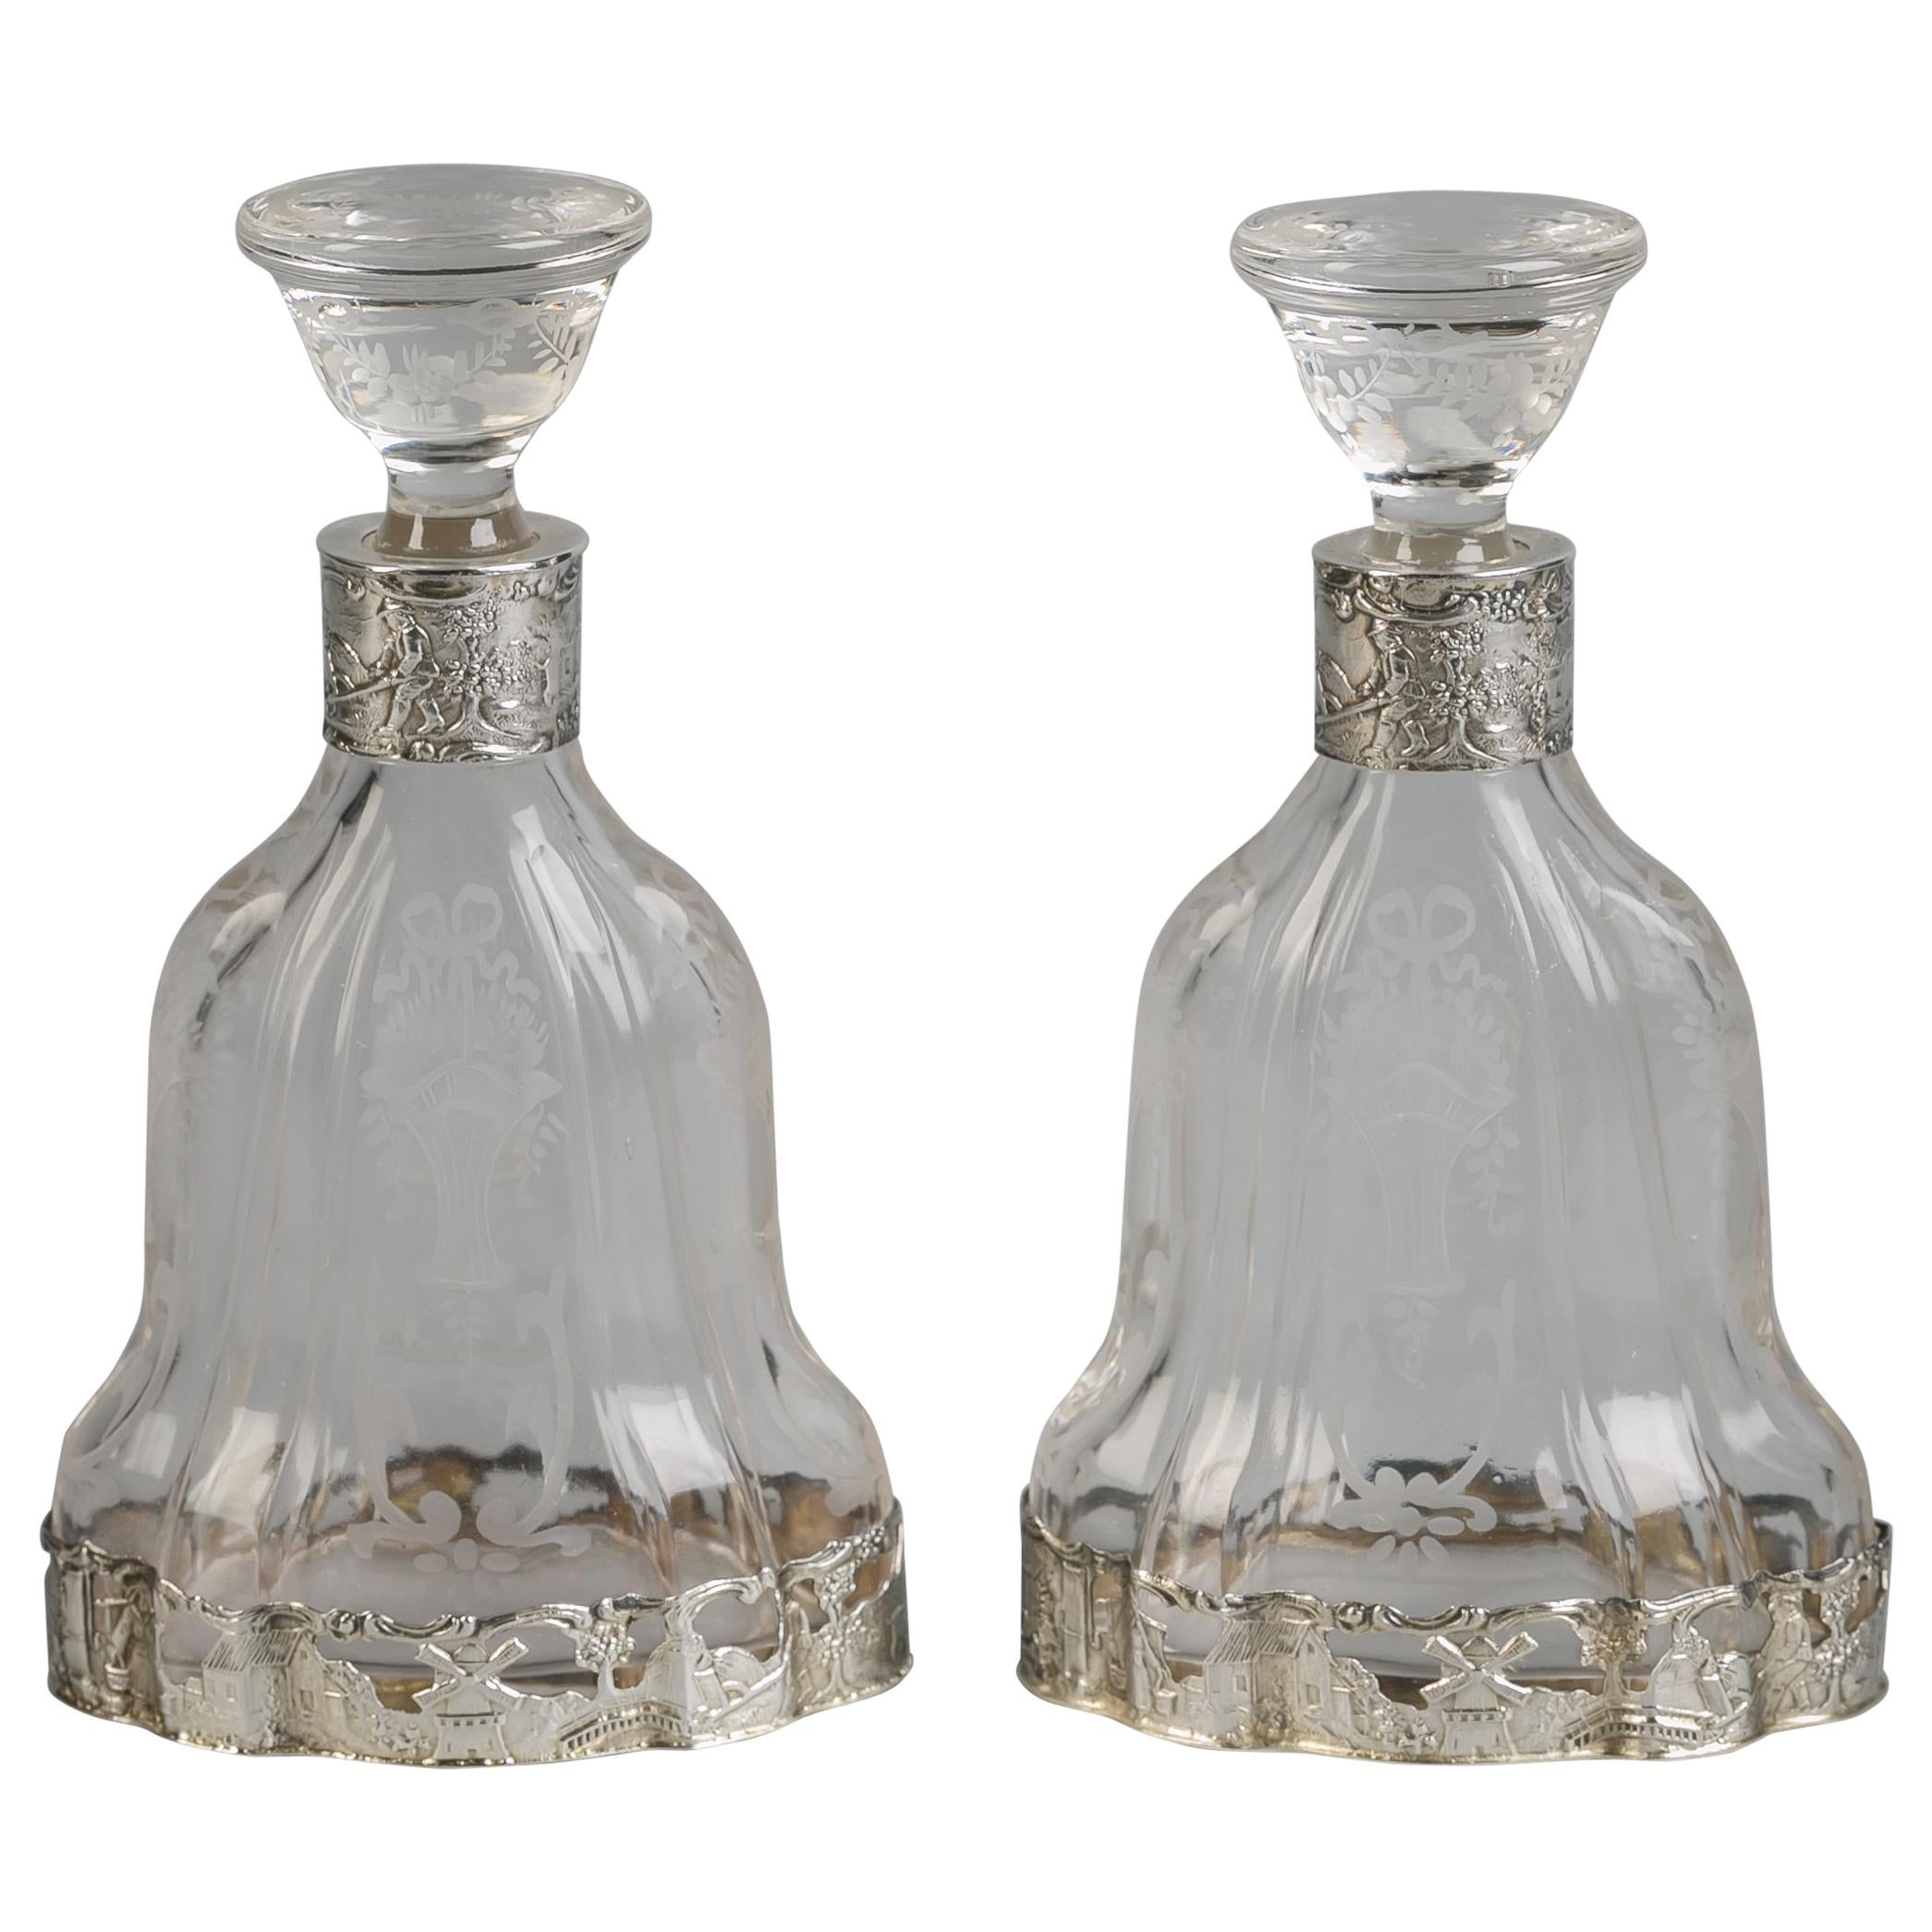 Pair of Continental Silver and Crystal Perfume Bottles, circa 1890